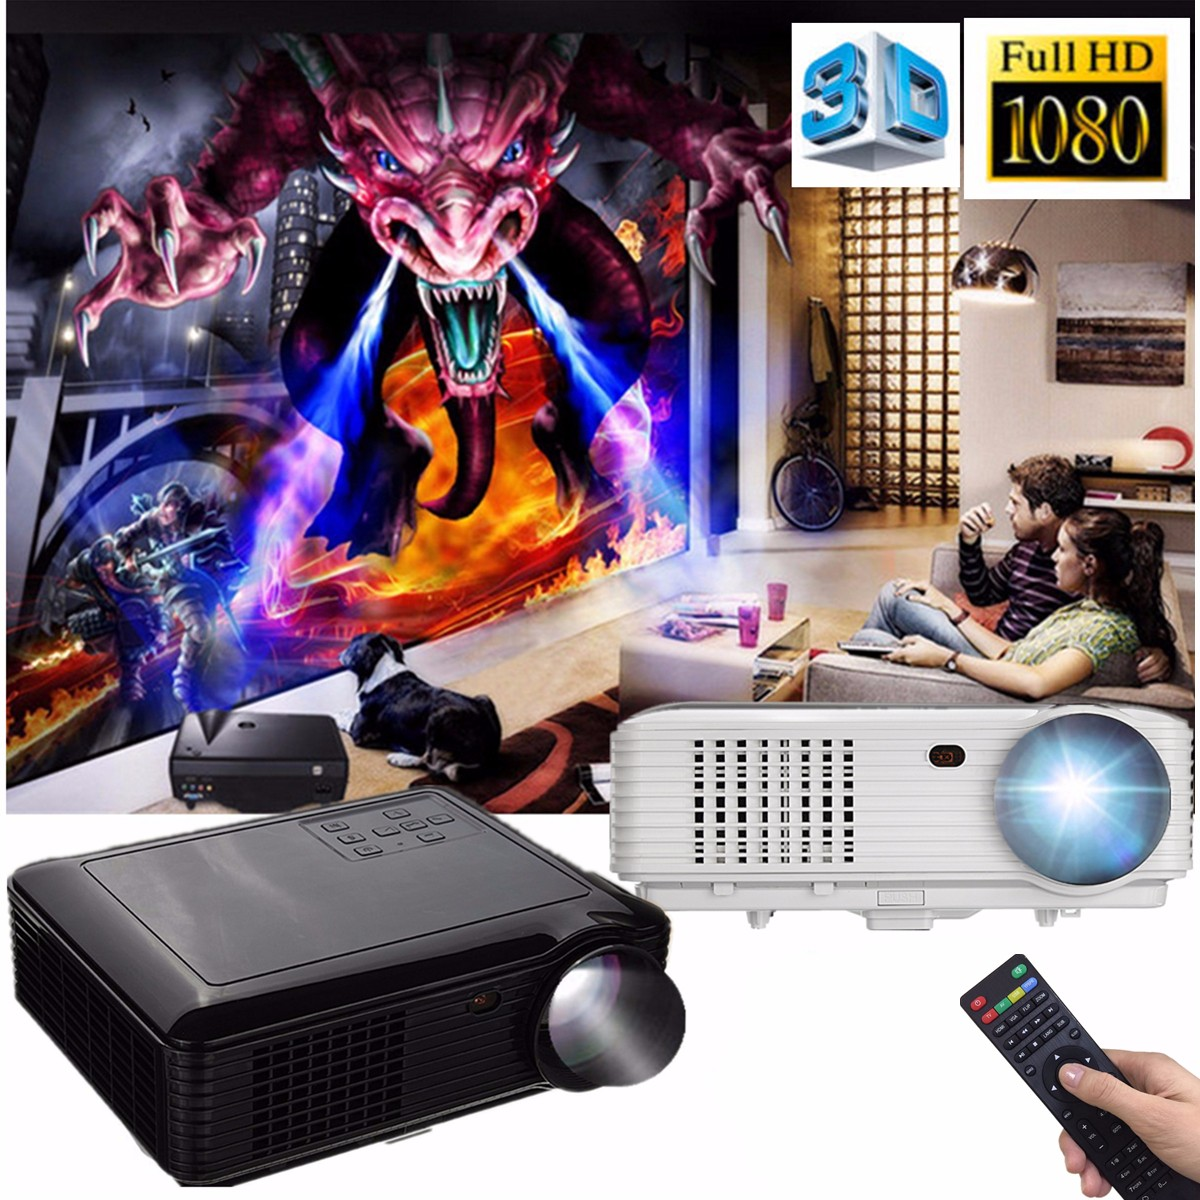 3500Lm LED Video Projector 800x480 Resolution Suppot 1080P USB VGA SD AV for for Home Theater Video Games Gaming Business